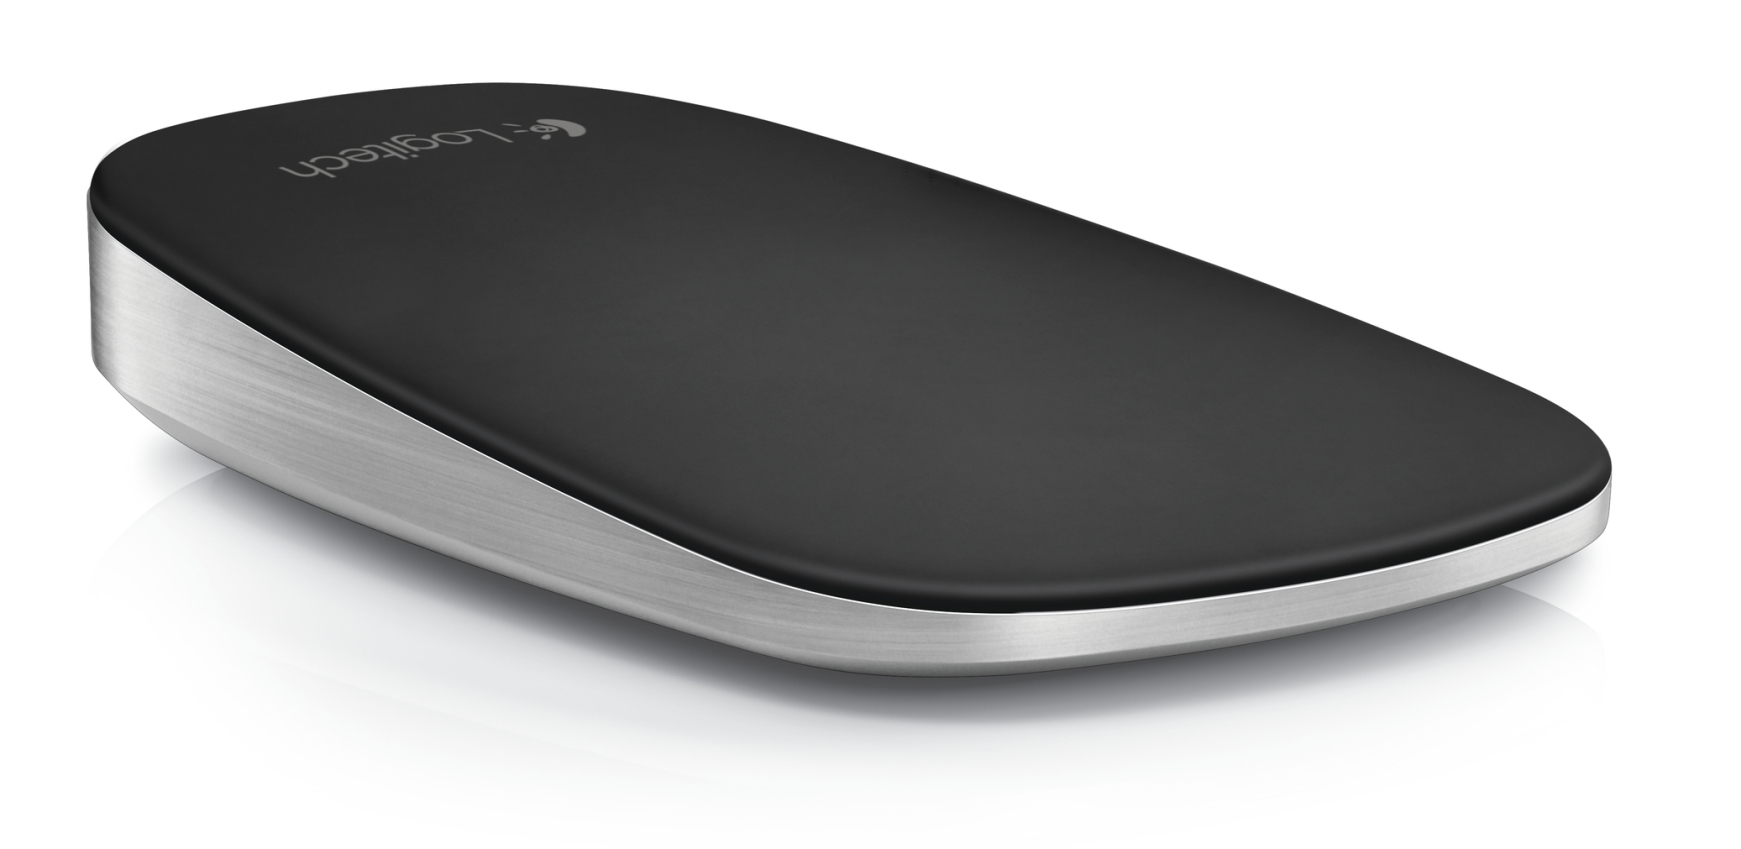 Logitech Ultrathin Touch Mouse, un nou mouse versatil